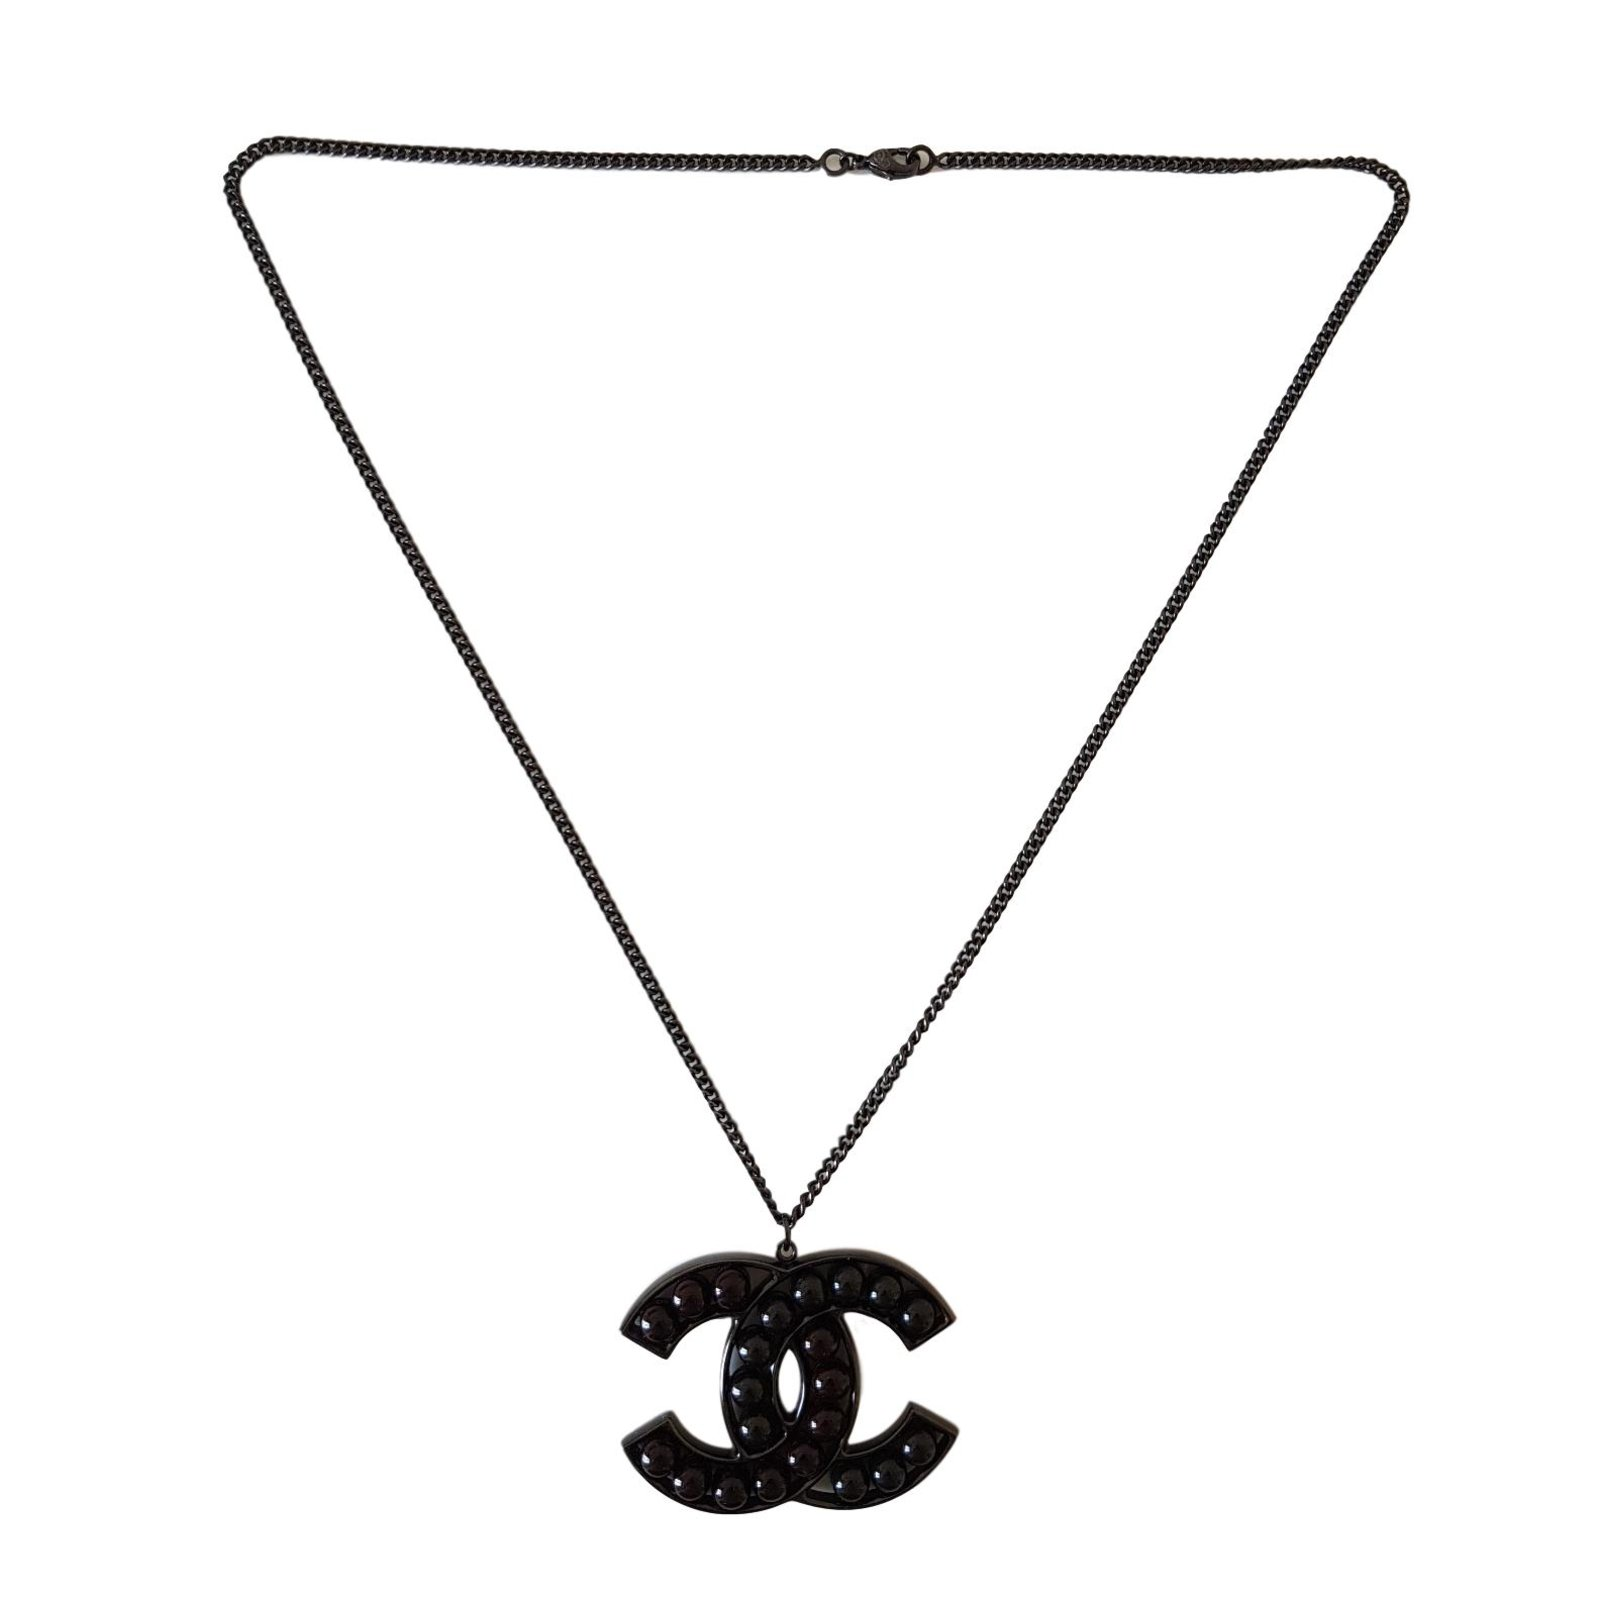 Chanel Necklaces Necklaces Metal Black ref.77127.